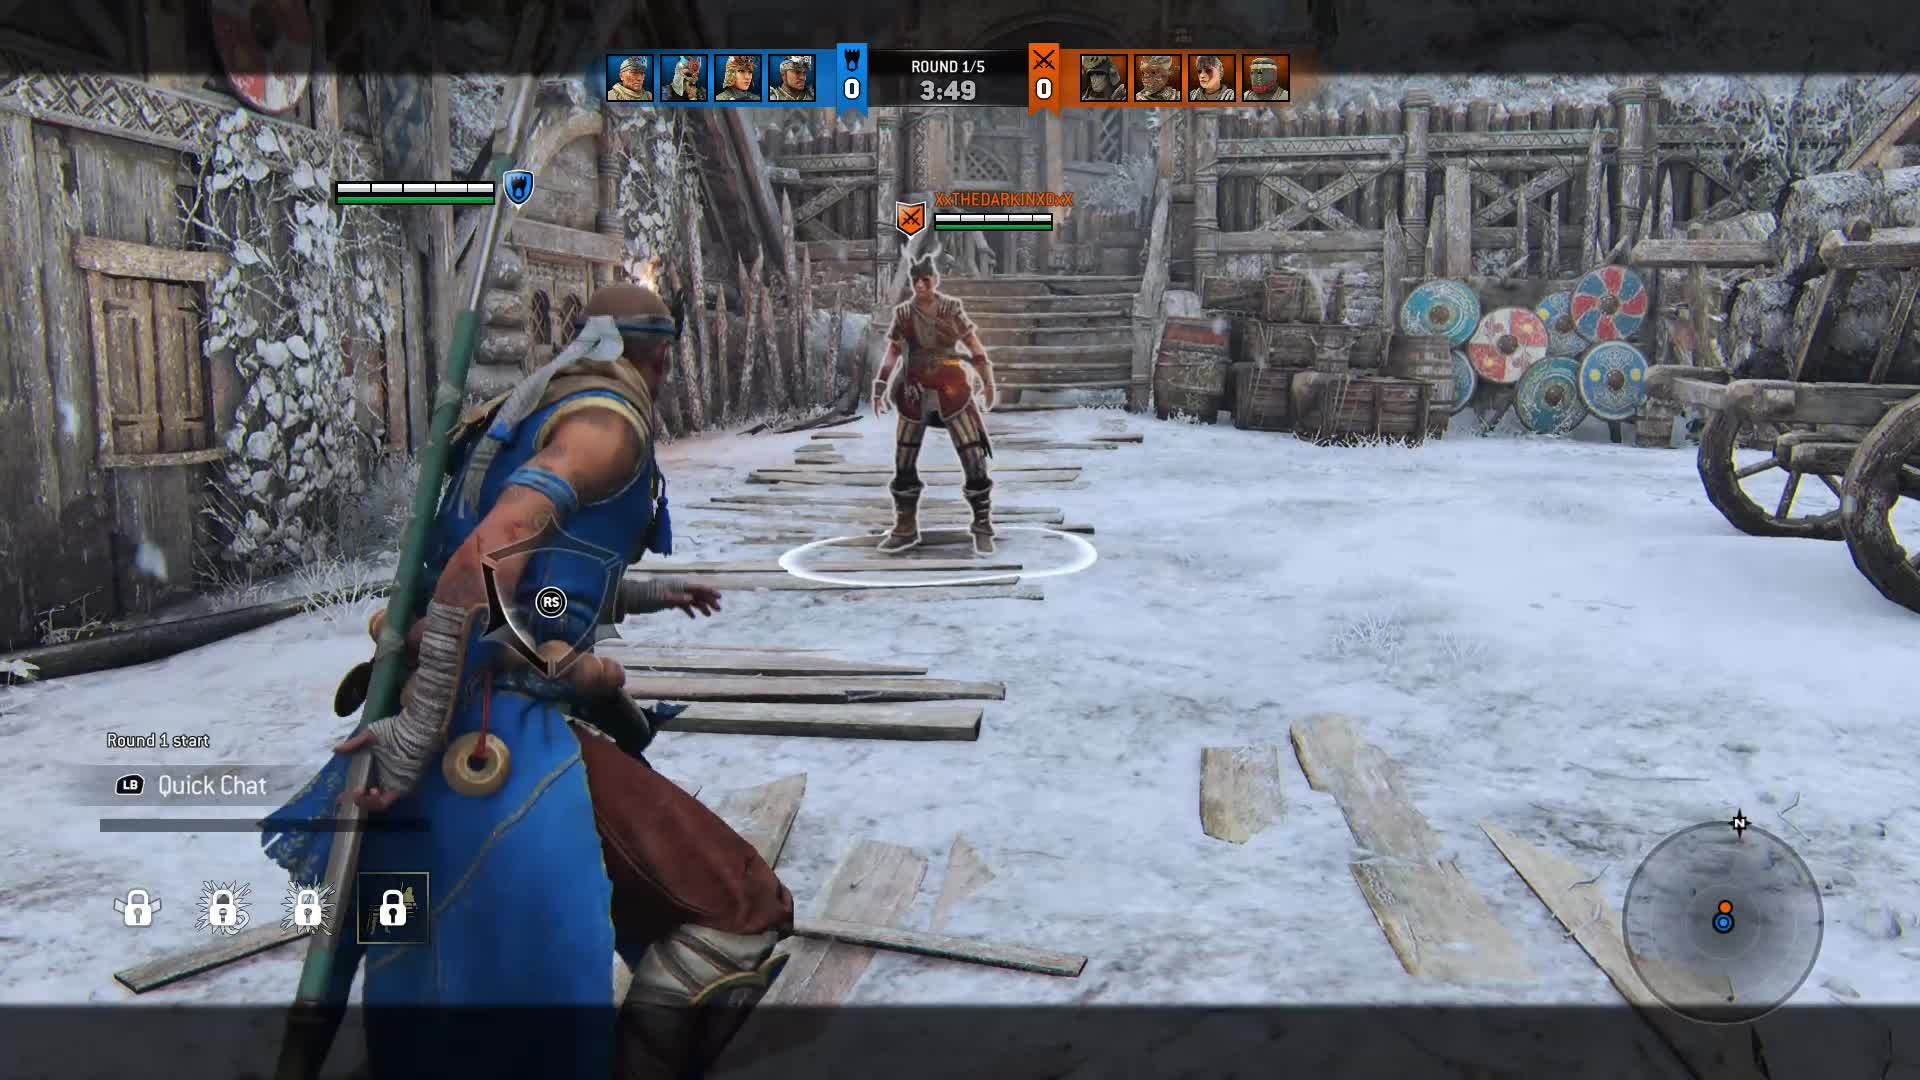 For Honor: General - Oof video cover image 1